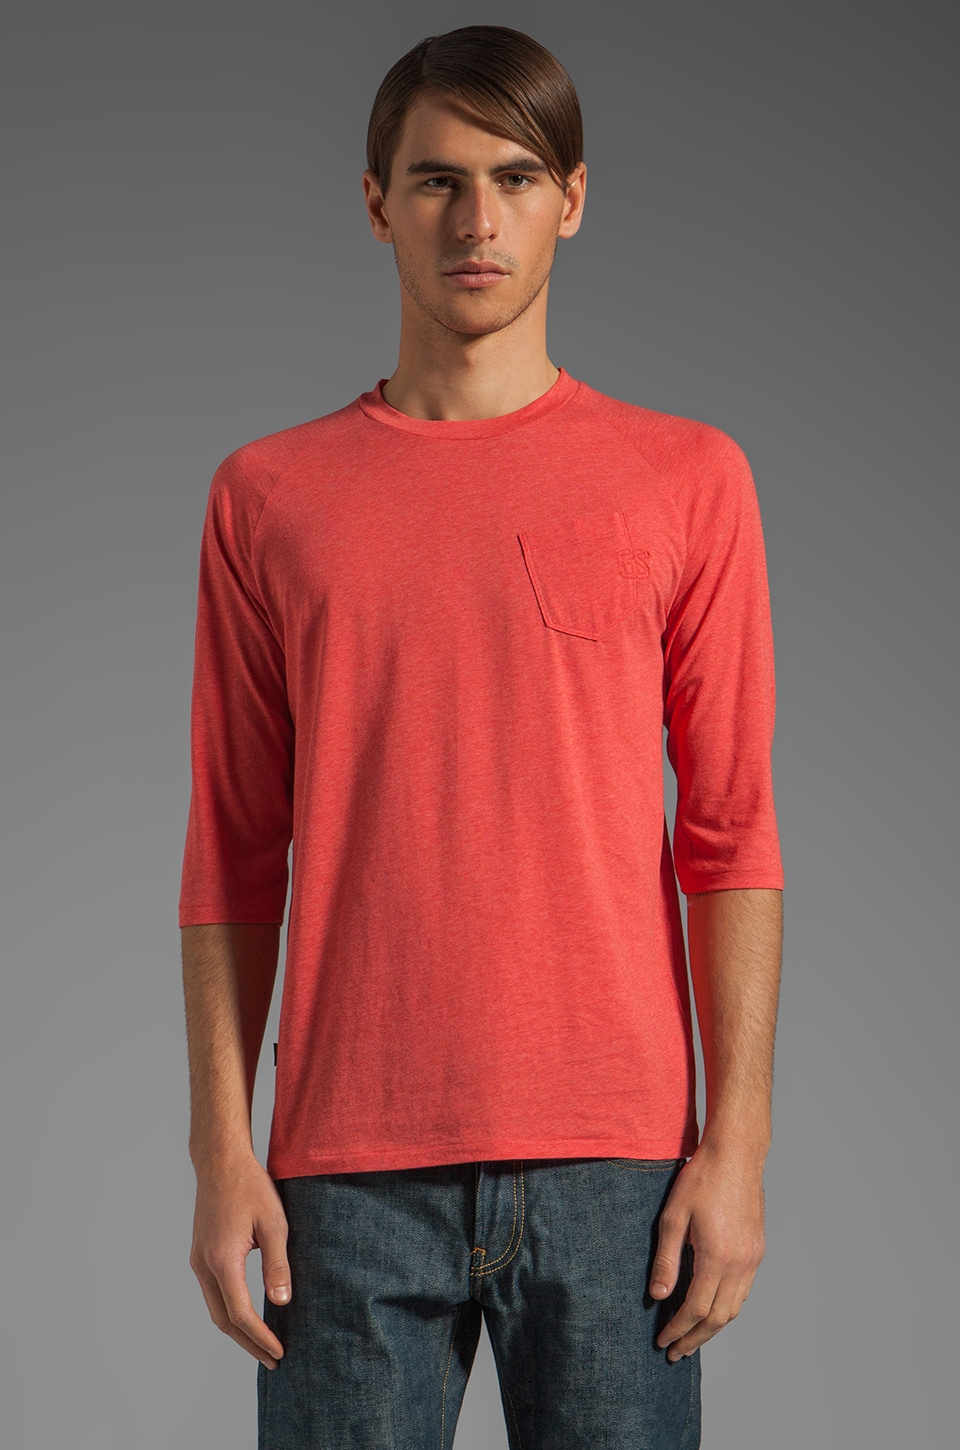 G-Star Ace 1/2 Sleeve Tee in Ketchup Heather